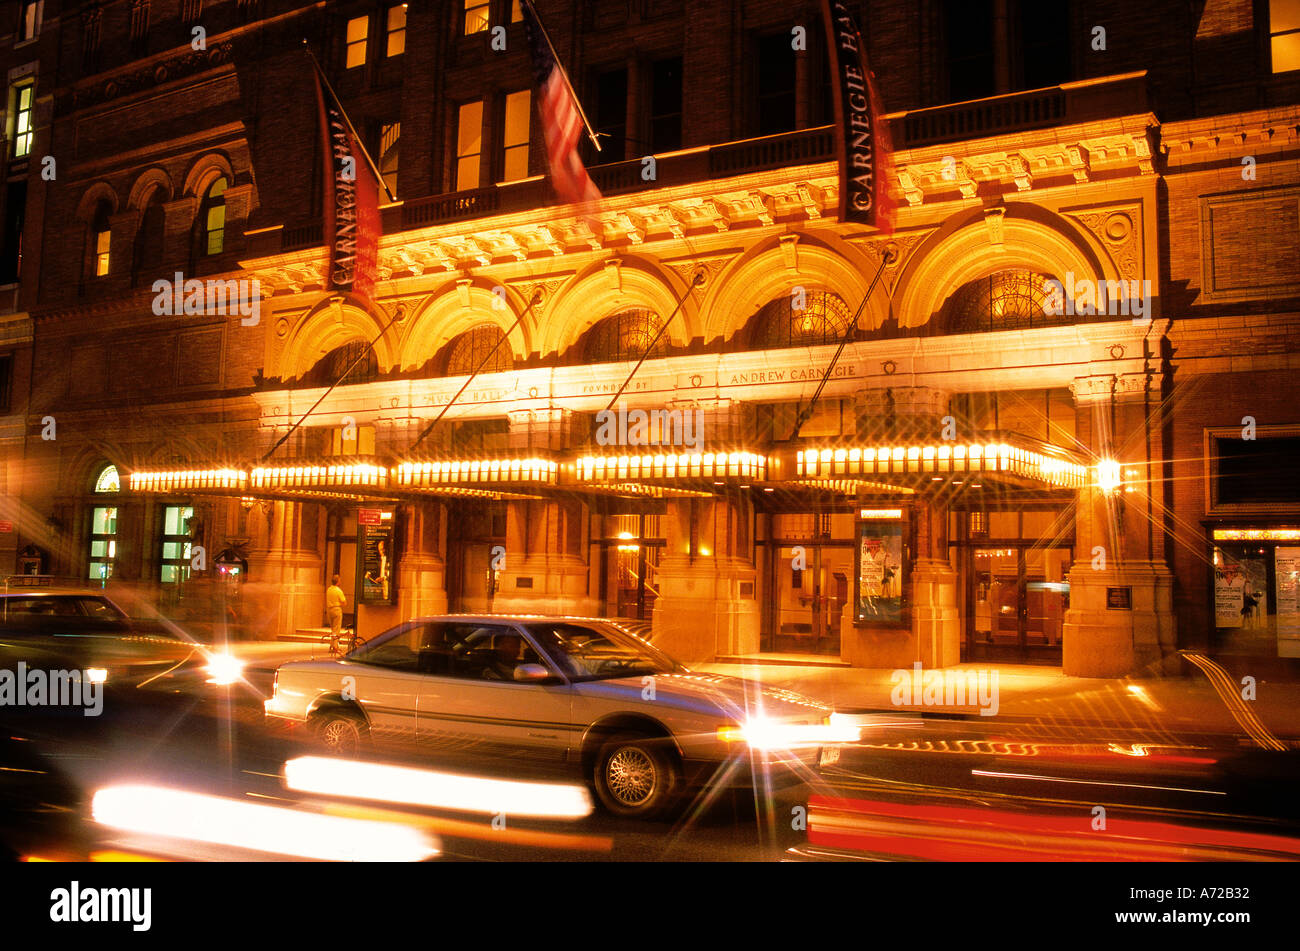 Carnegie Hall at night in New York City - Stock Image